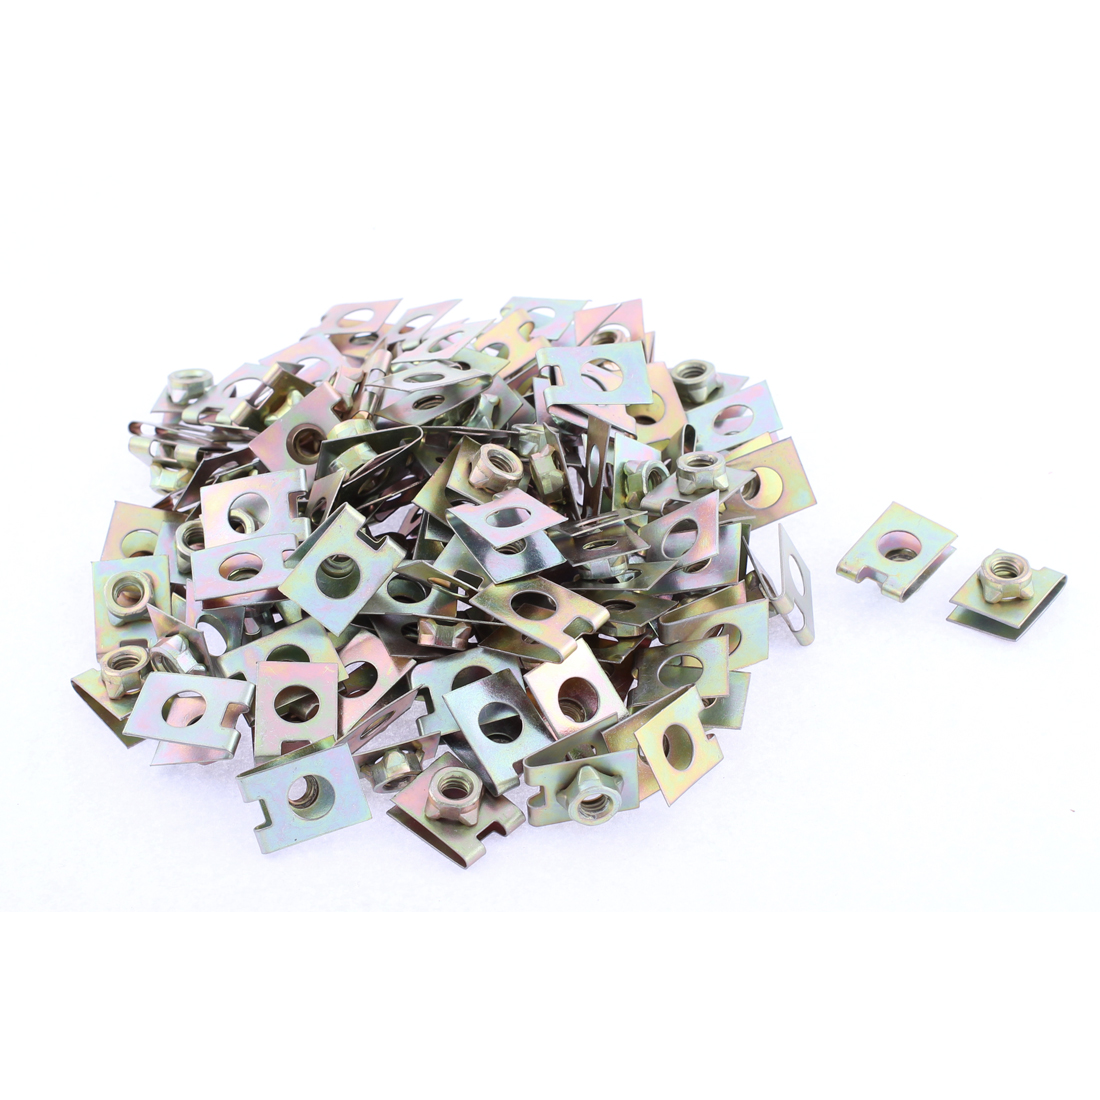 100 Pcs 22mm x 16mm Metal Plate U-Type Clips Speed Nuts for Car Panel Fender